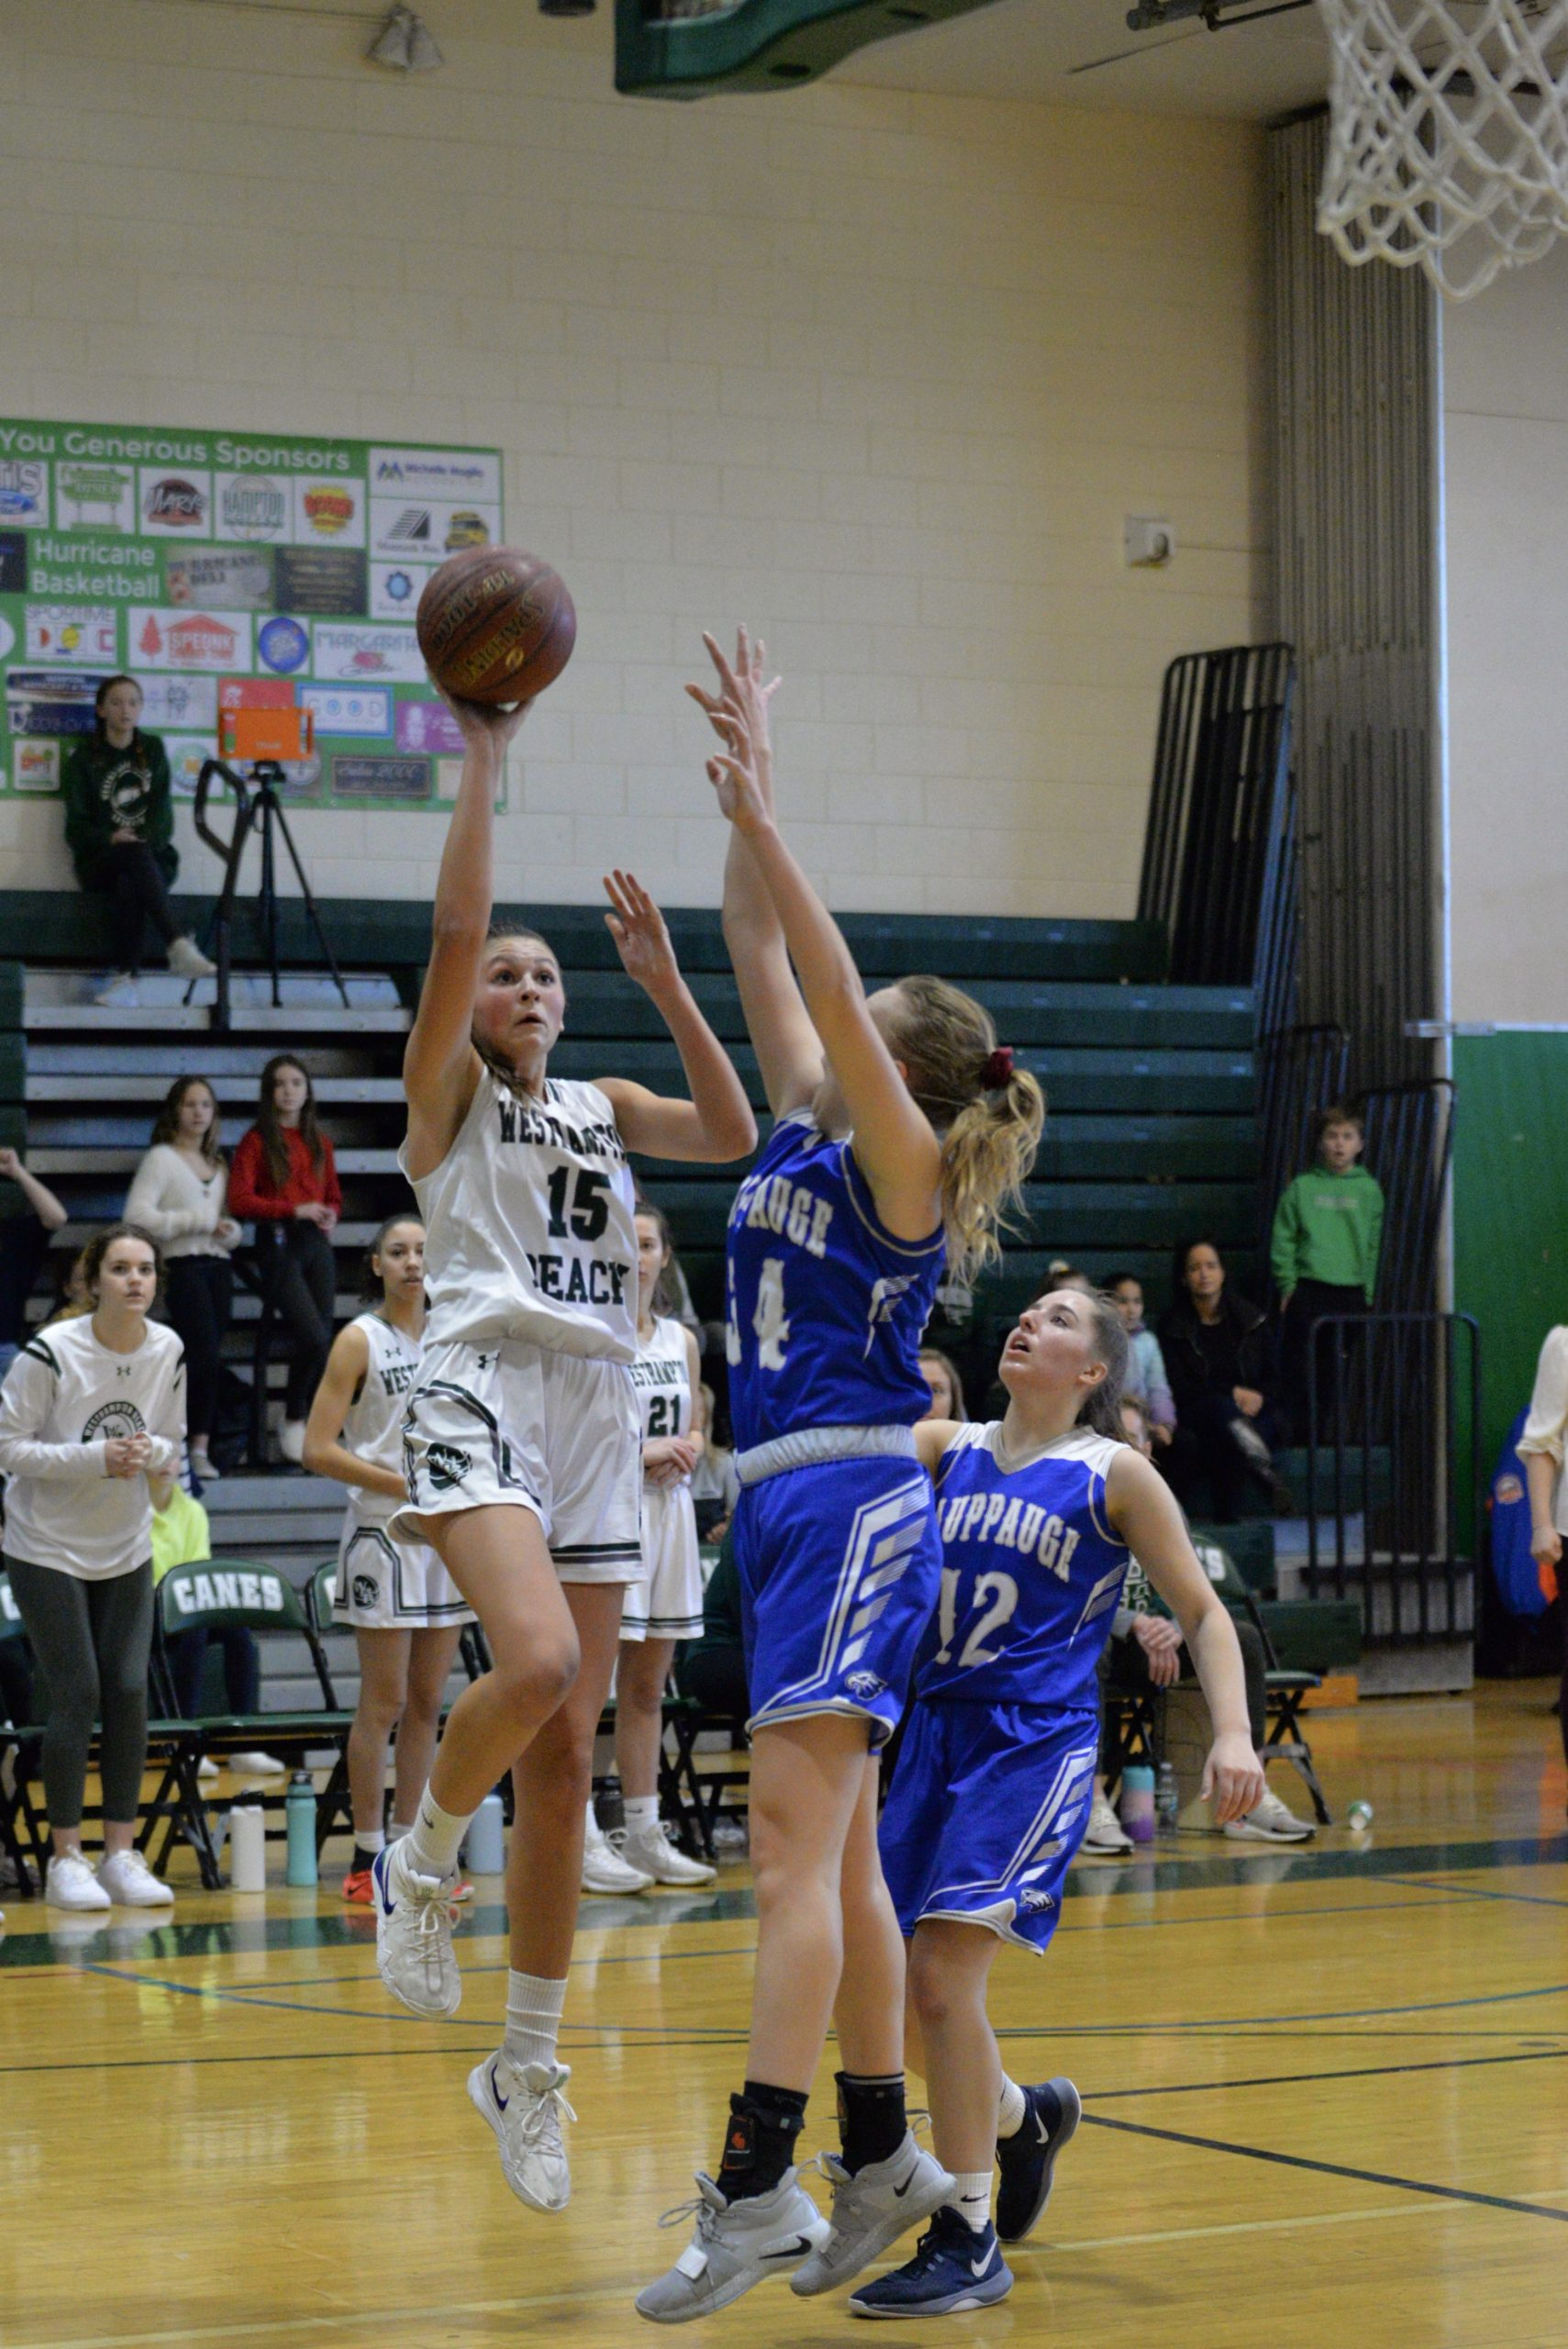 Olivia Rongo made a couple of big players for the Lady Canes on Friday.